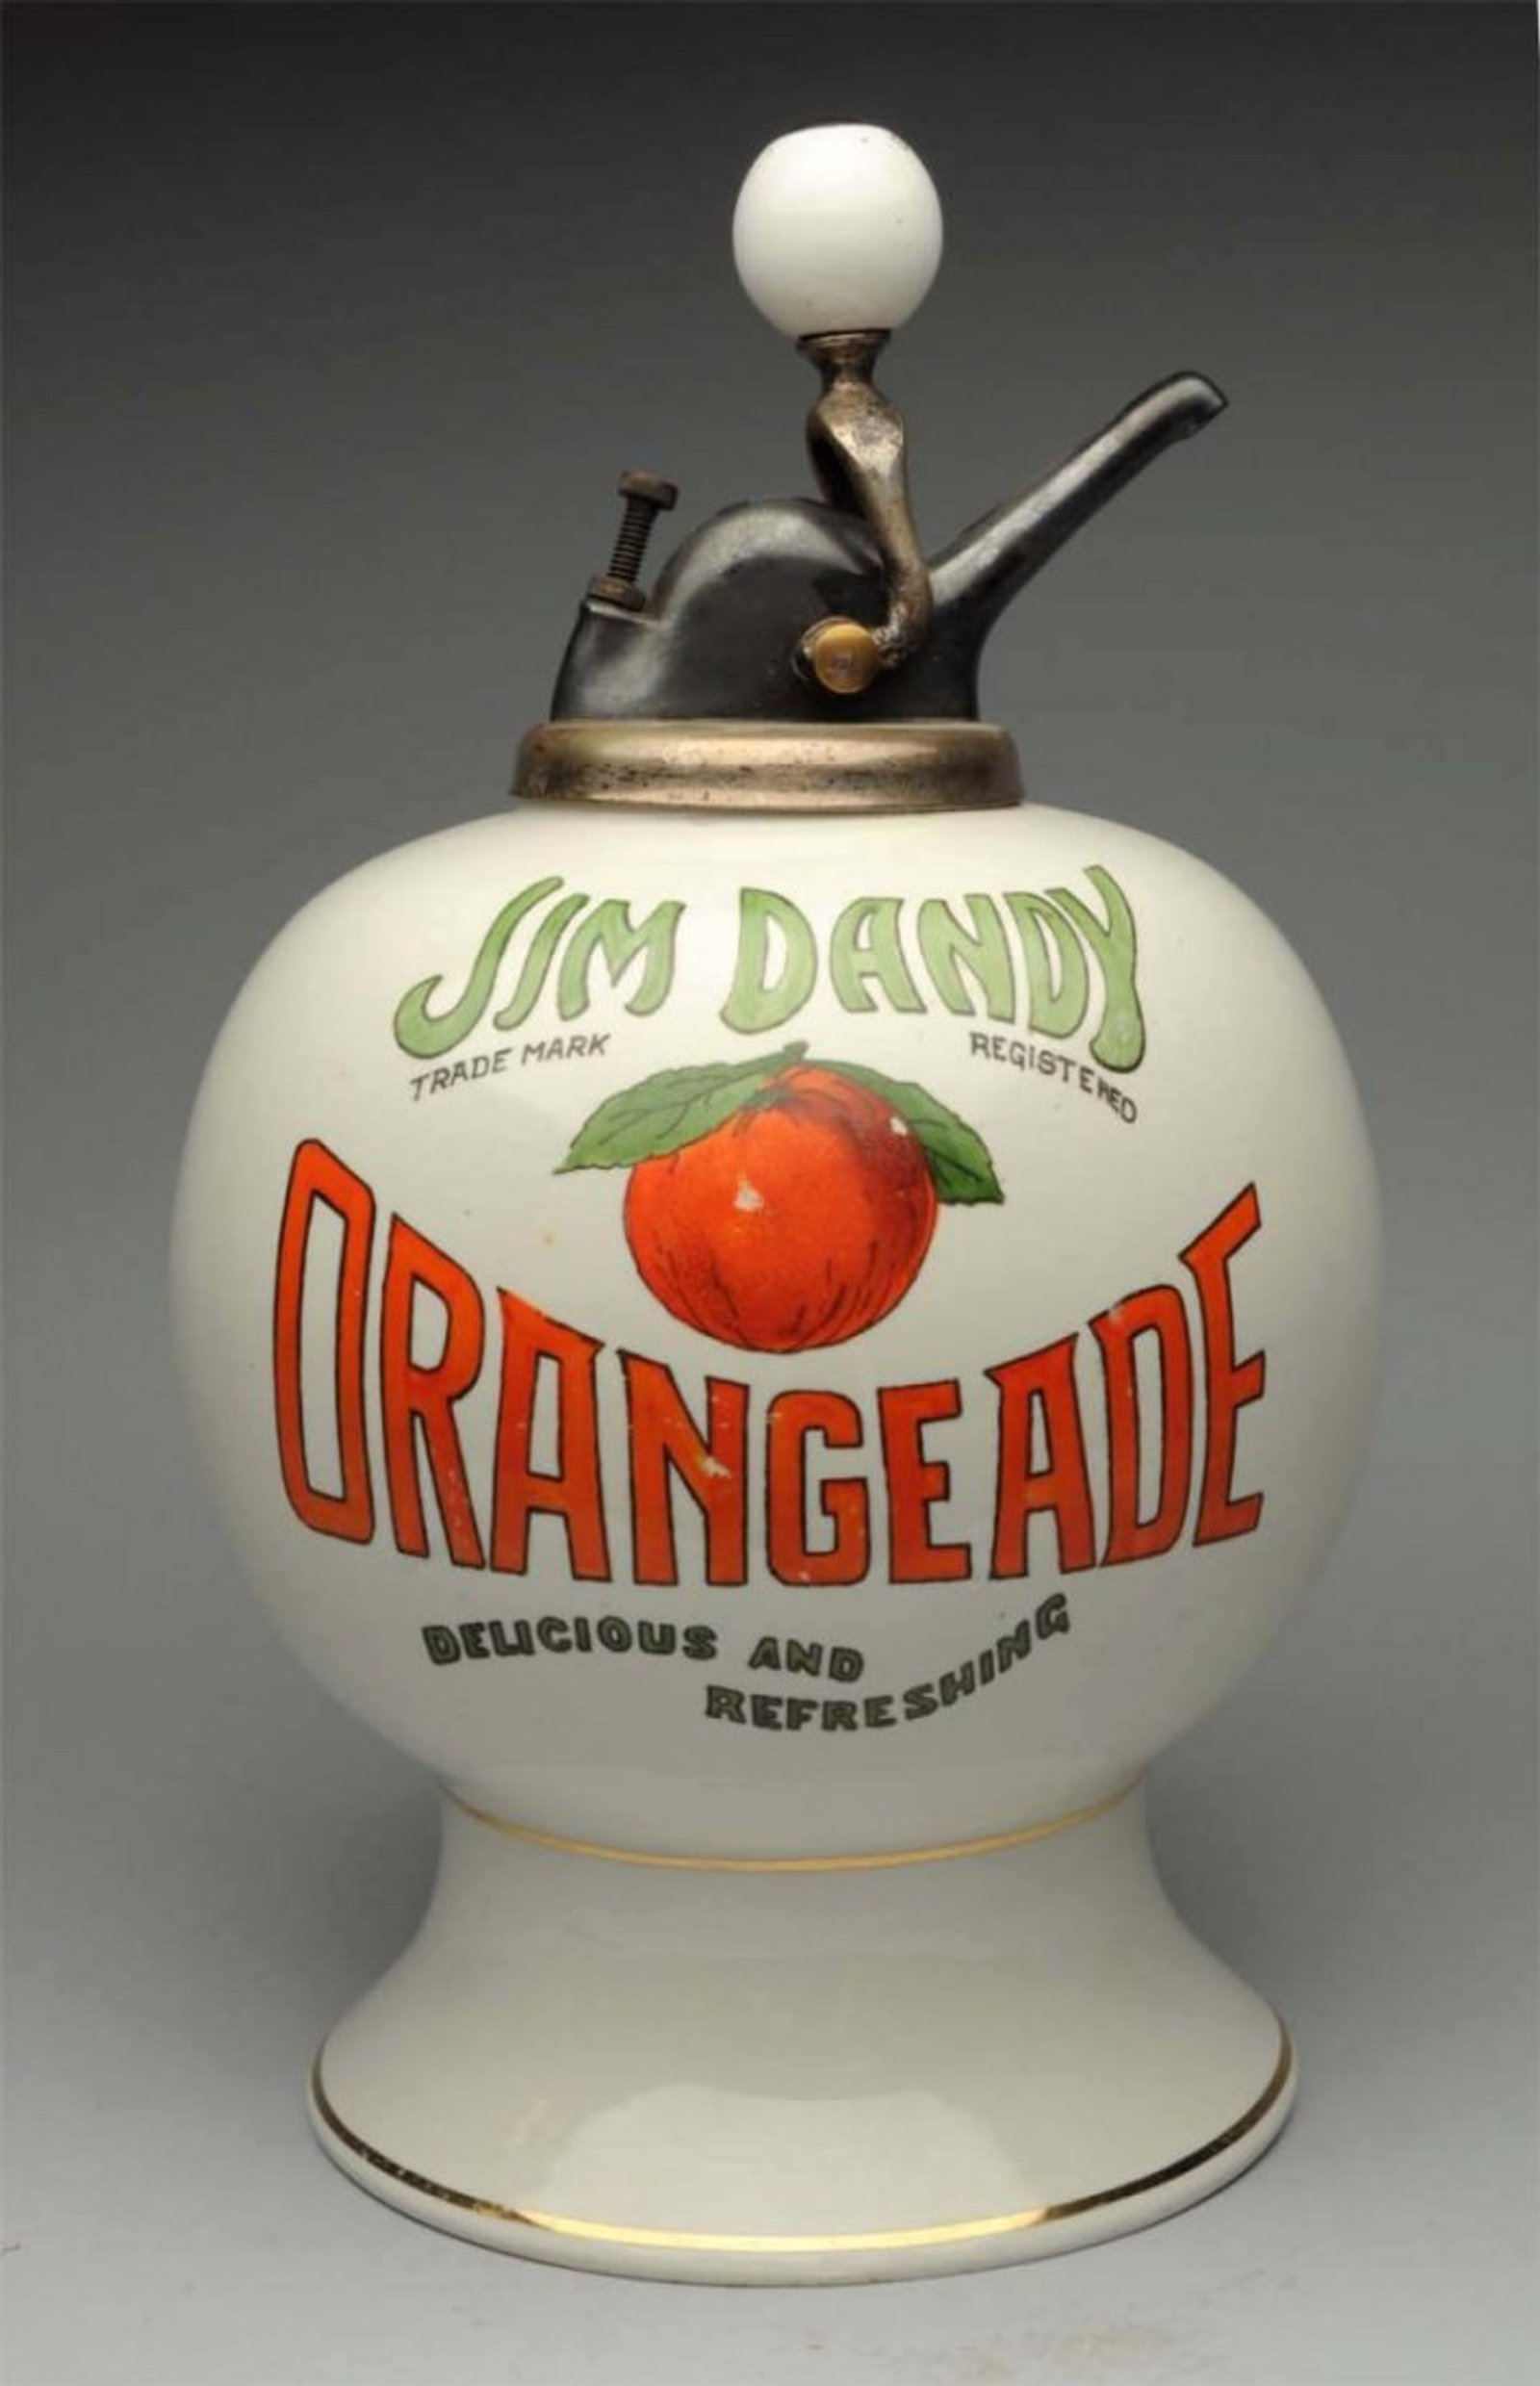 Collectors are sweet on antique syrup dispensers